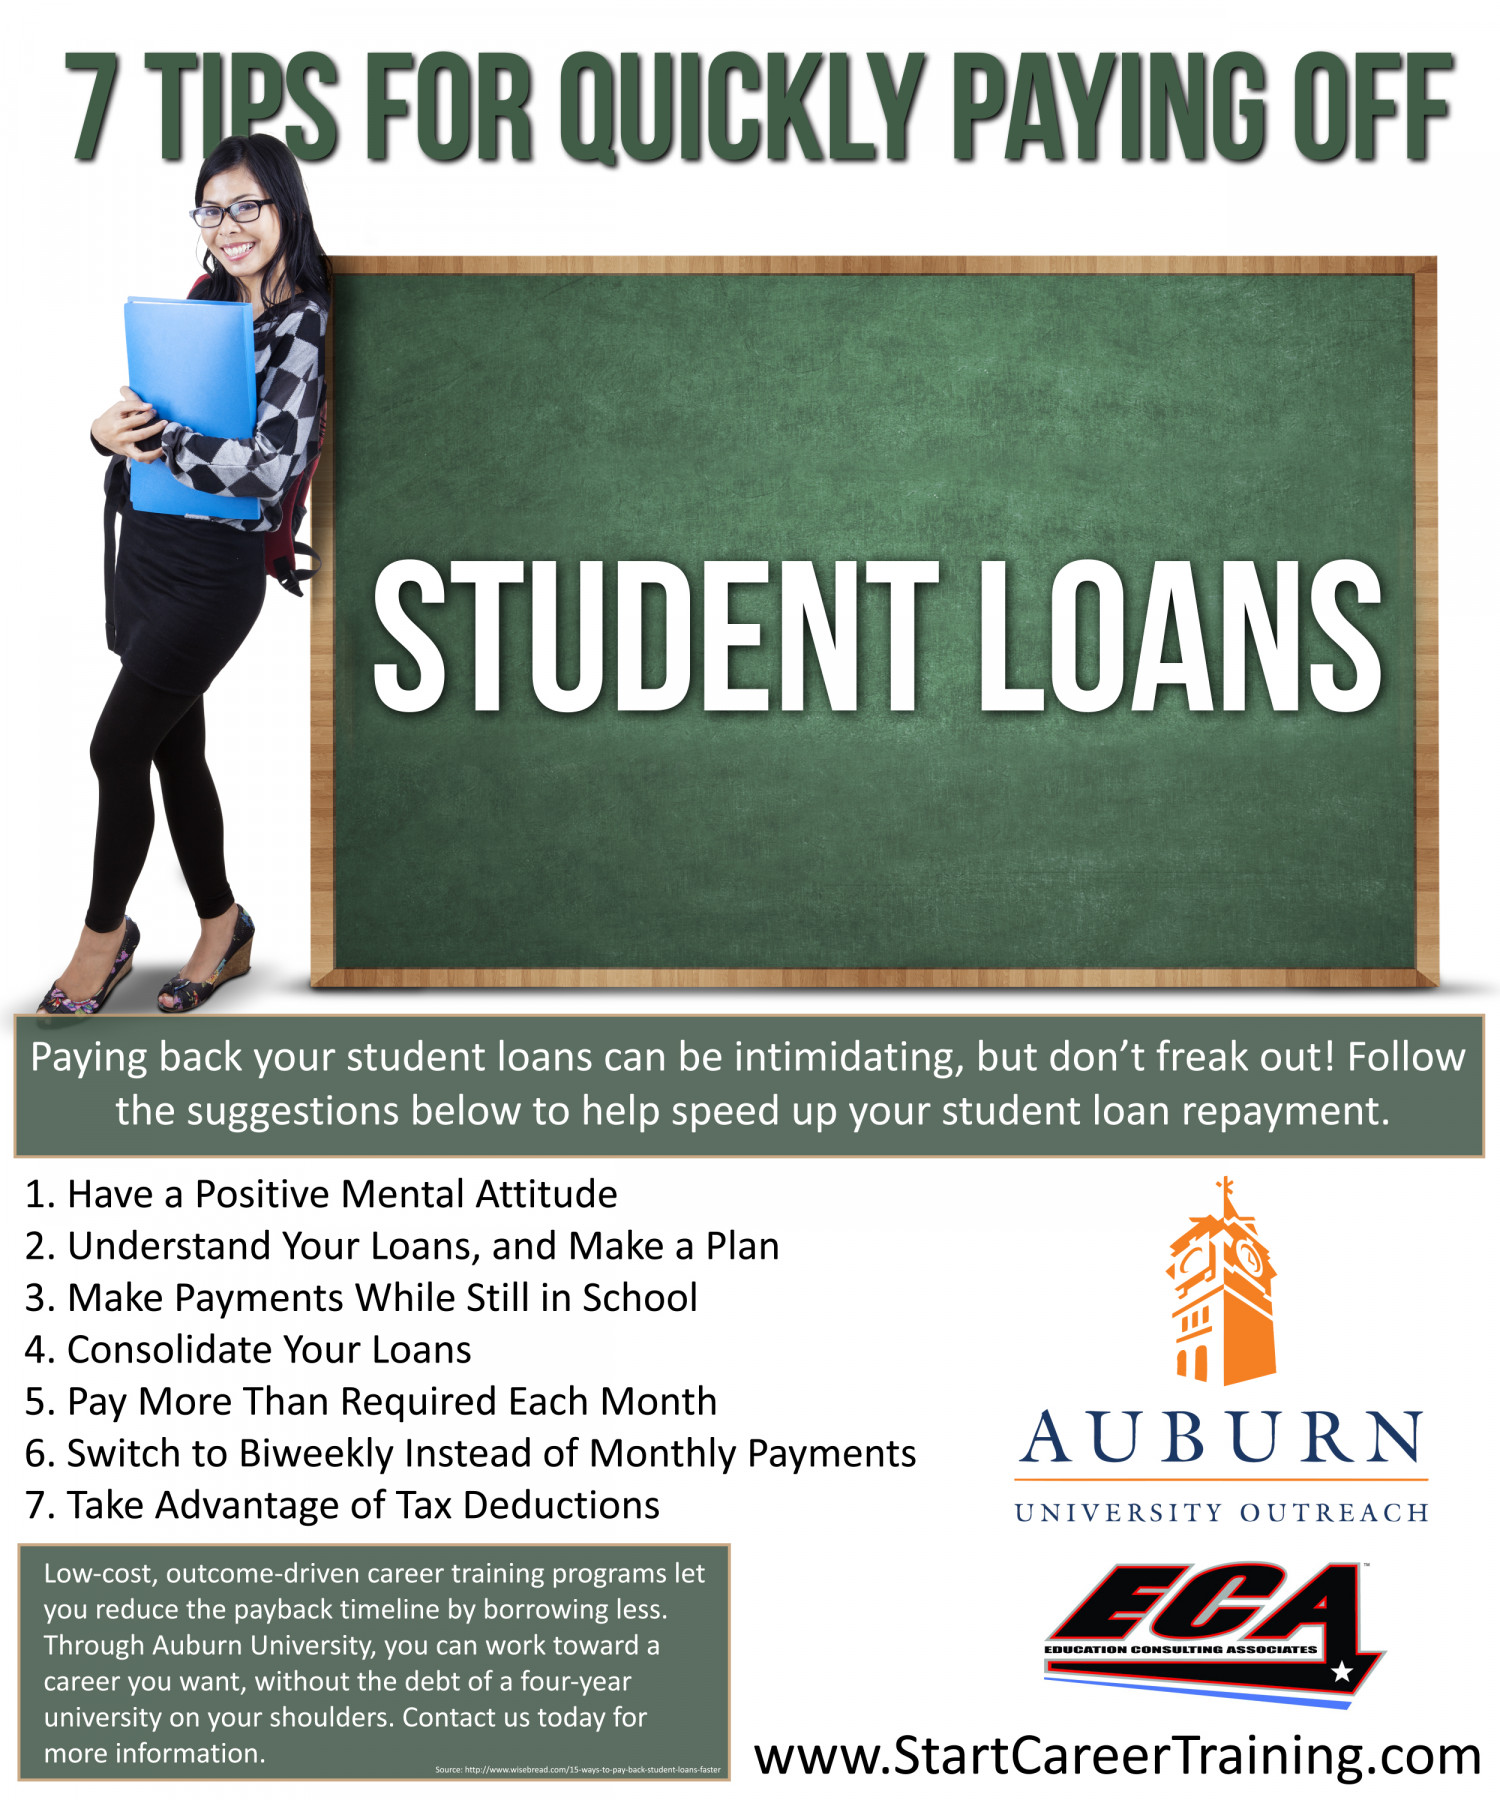 7 Tips for Quickly Paying off Student Loans Infographic